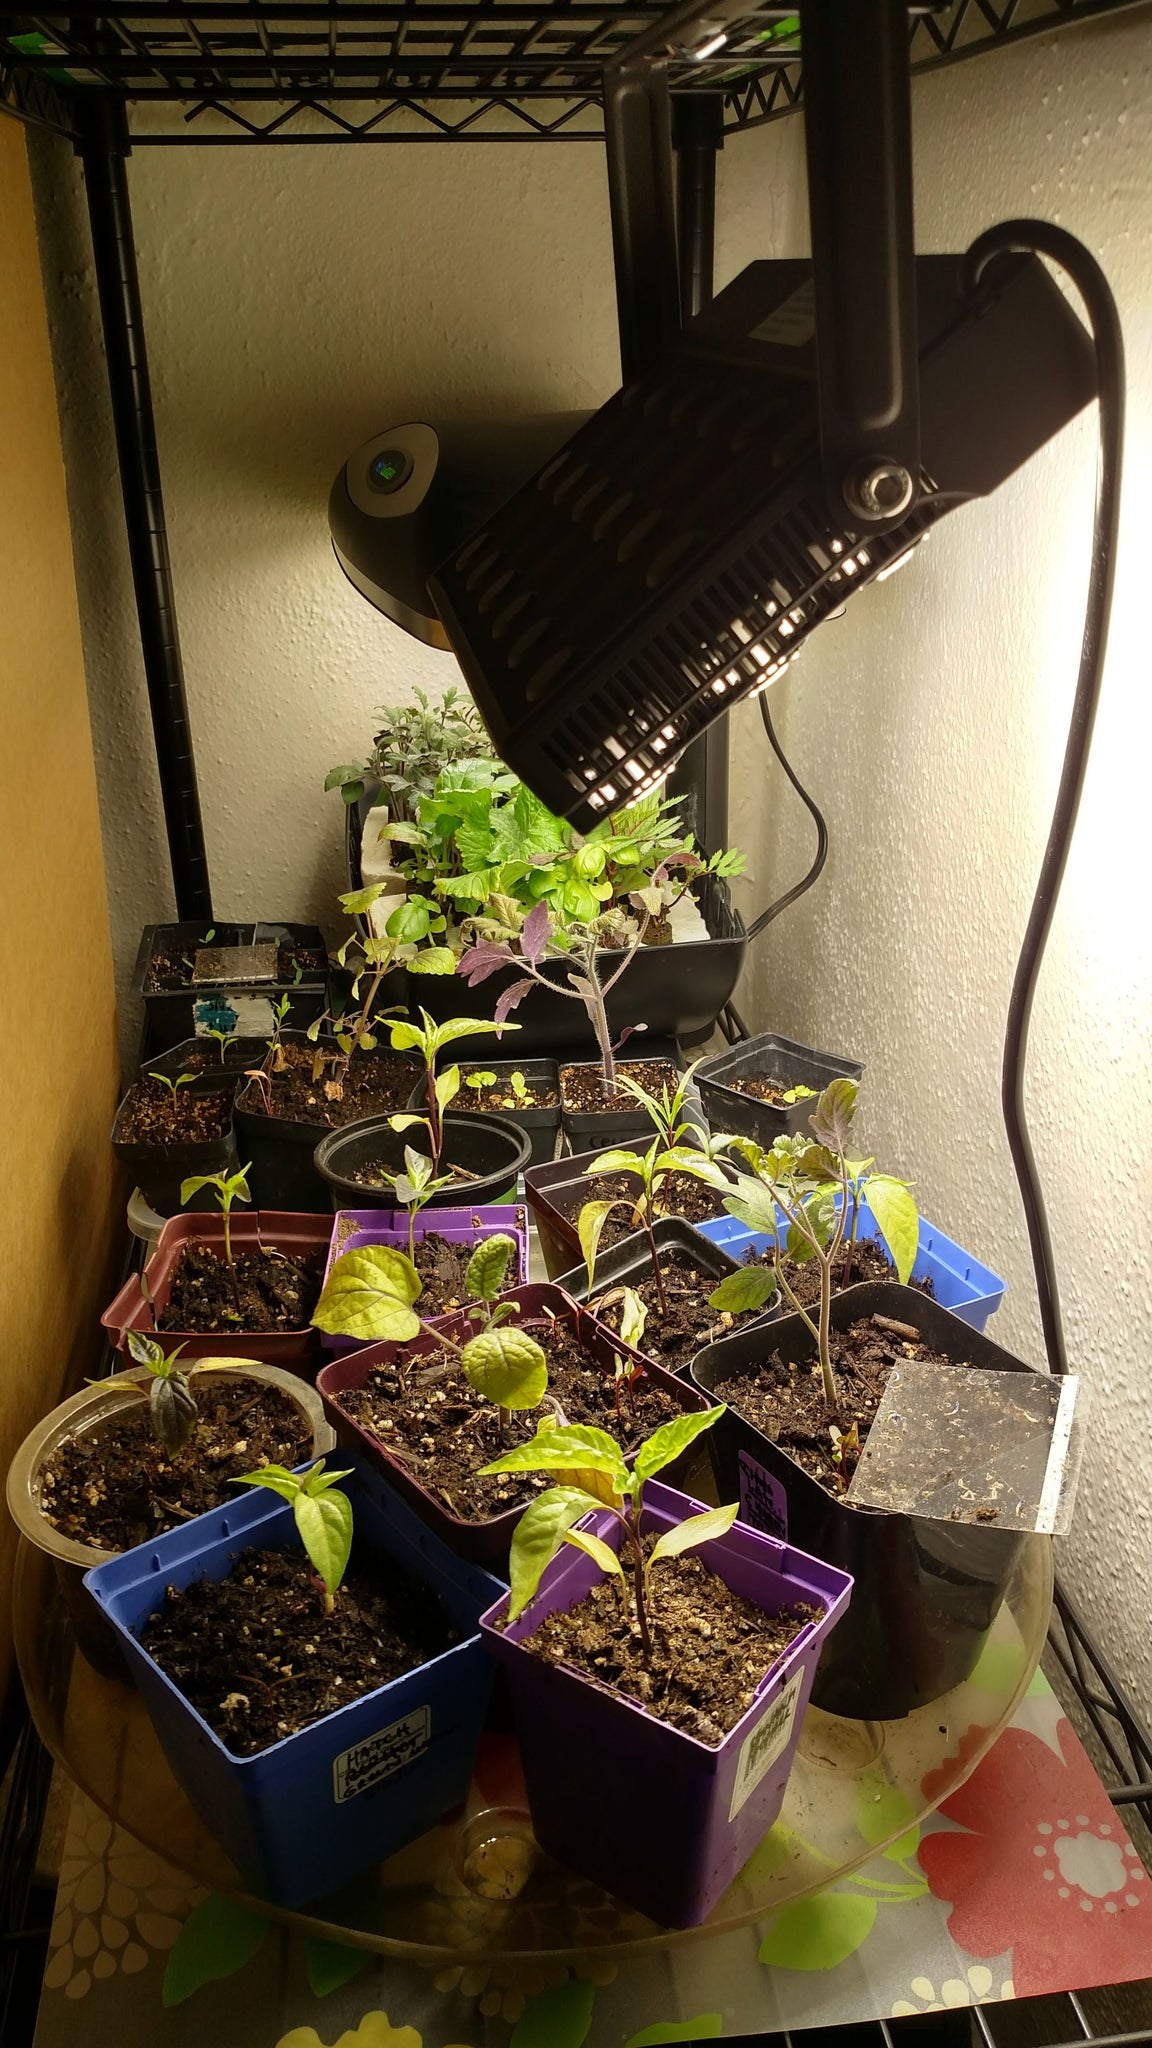 Too Bright LED Lights (too close to pepper plants)